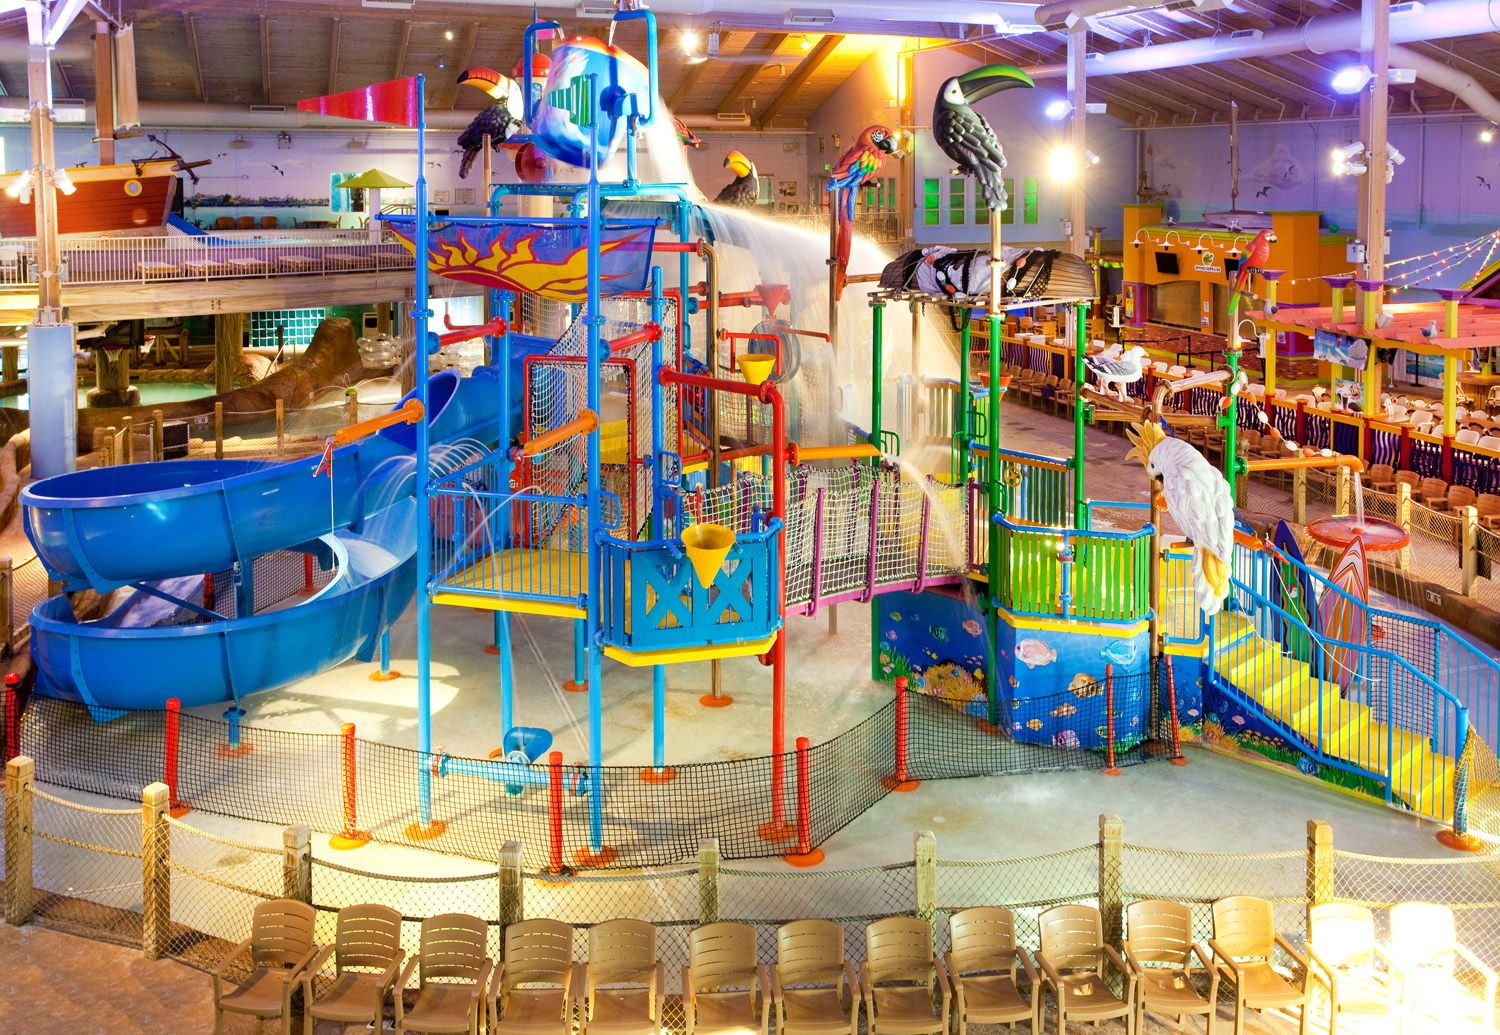 Coco key water resort nj pictures Indoor Water Park New Jersey - Splash Stay CoCo Key